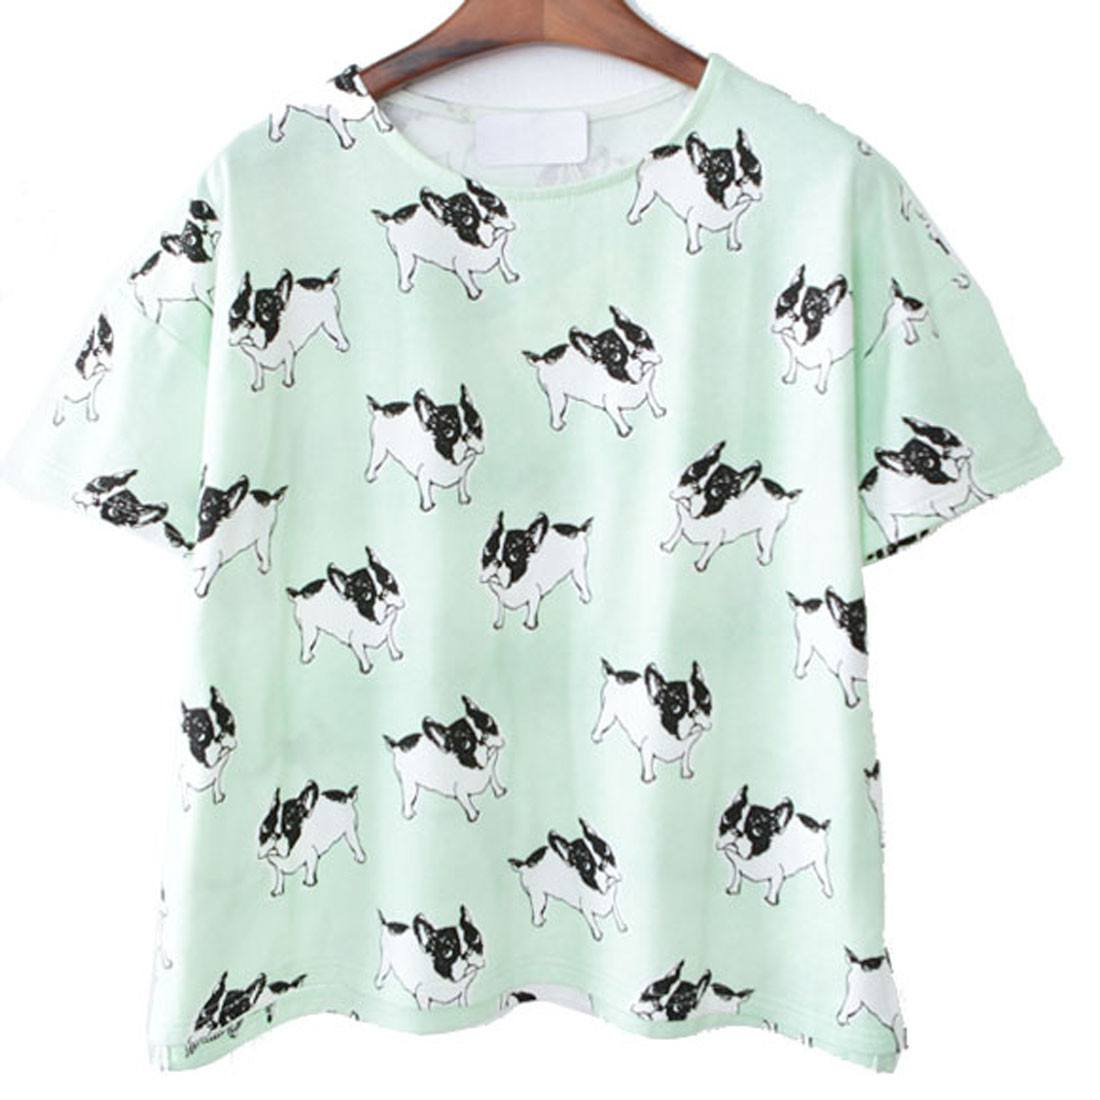 French Bulldog Frenchie Dog Print T-Shirt in Mint Green